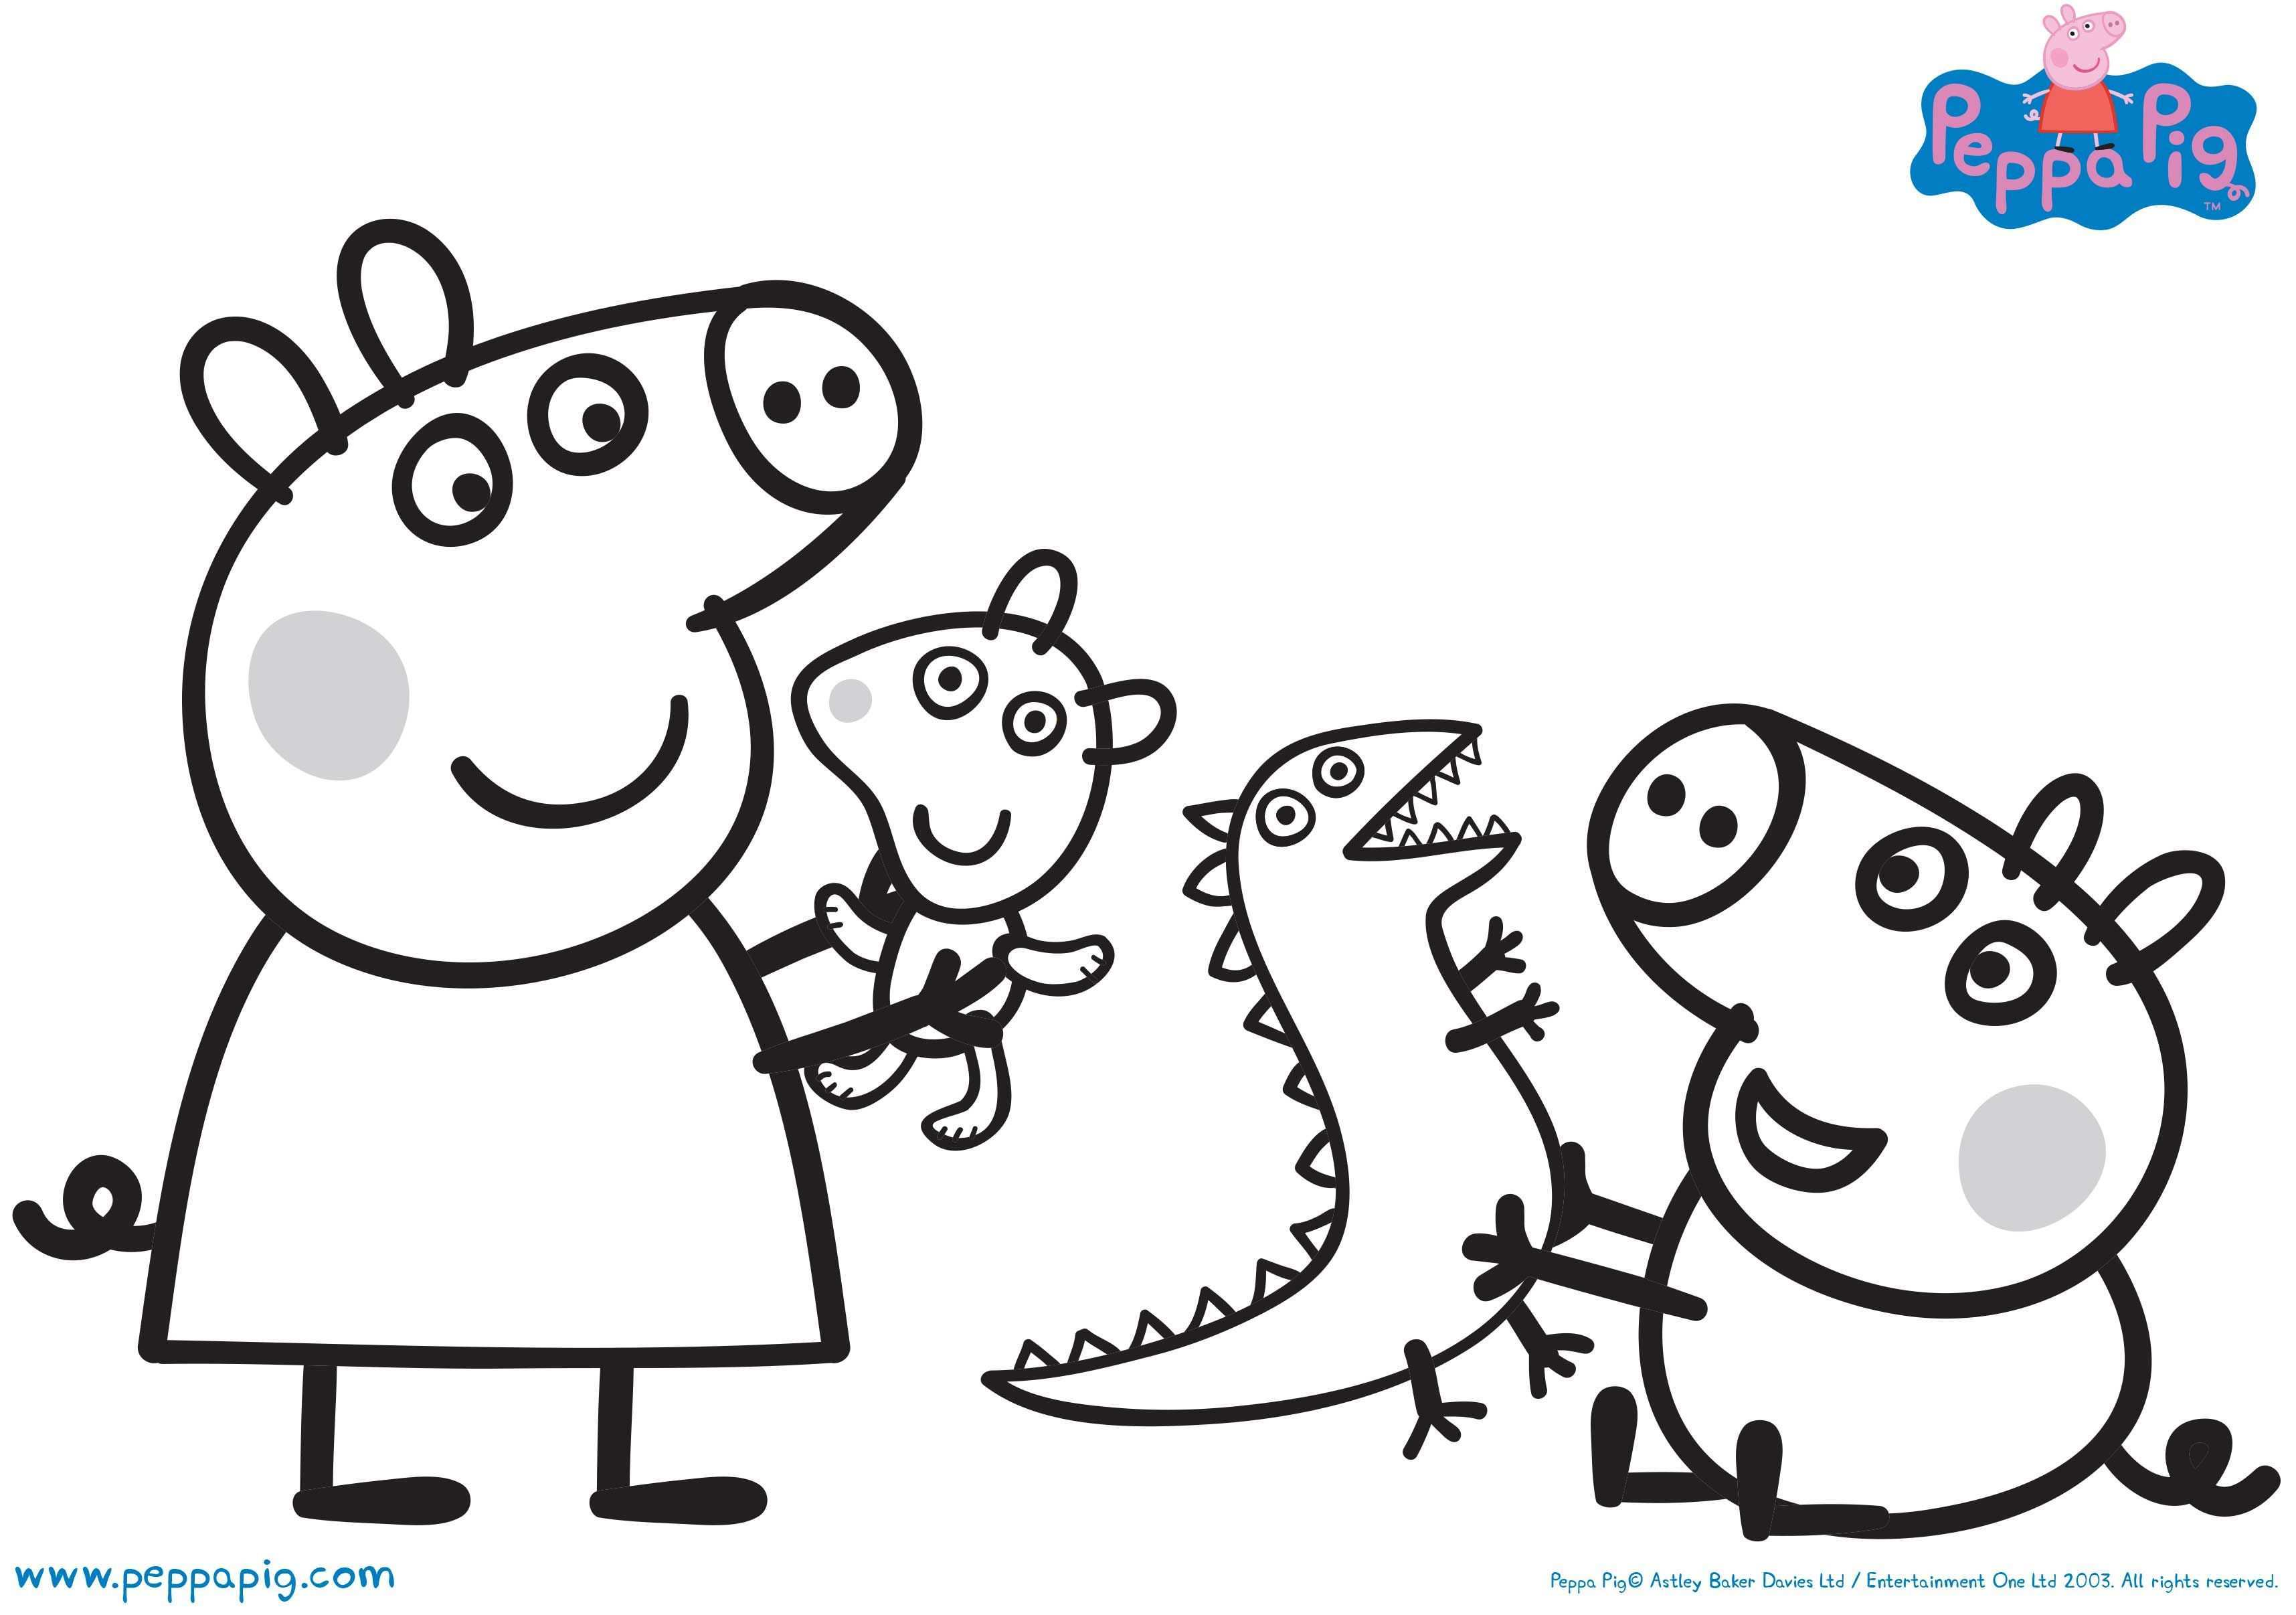 3431x2413 Download Fun Activities And Color Ins To Print Out And Play With Peppa Pig Coloring Pages Peppa Pig Colouring Peppa Pig Pictures